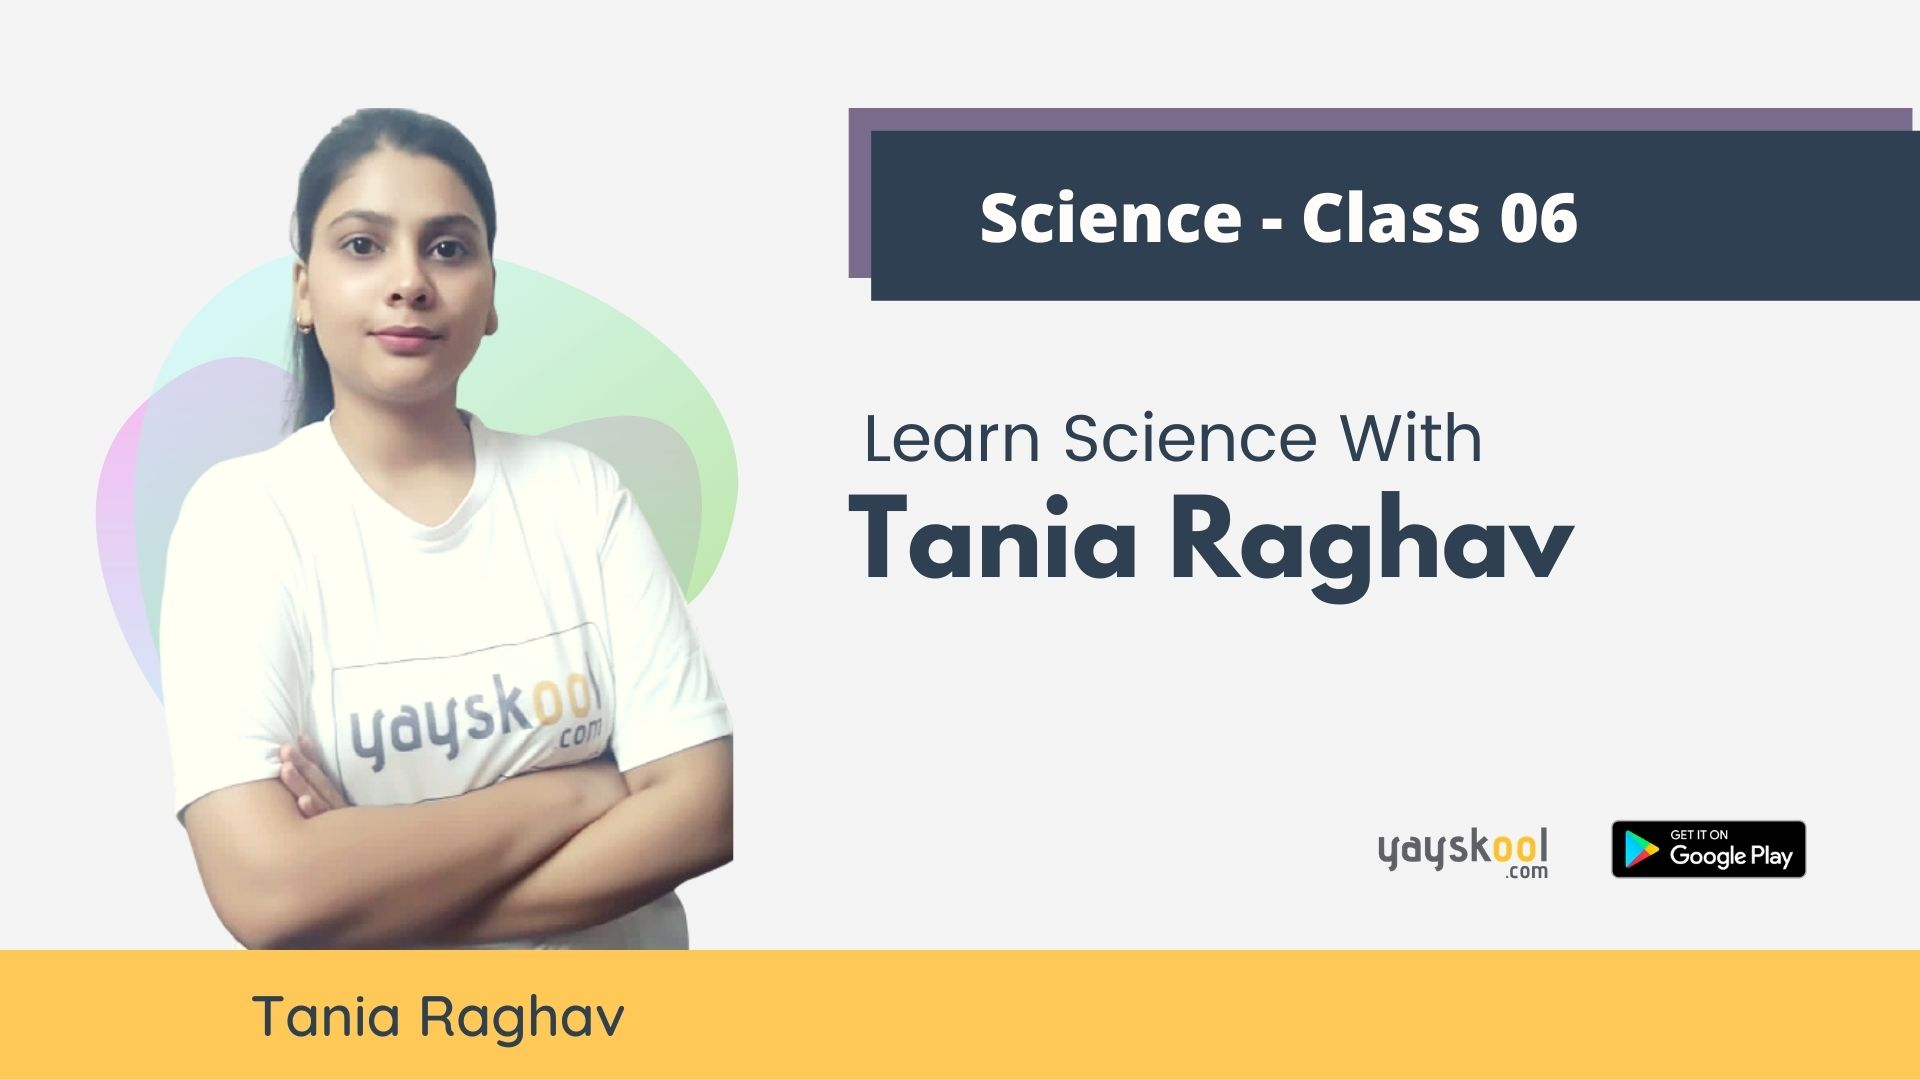 completecourse-learn-science-with-tania-raghav-class06-cbse